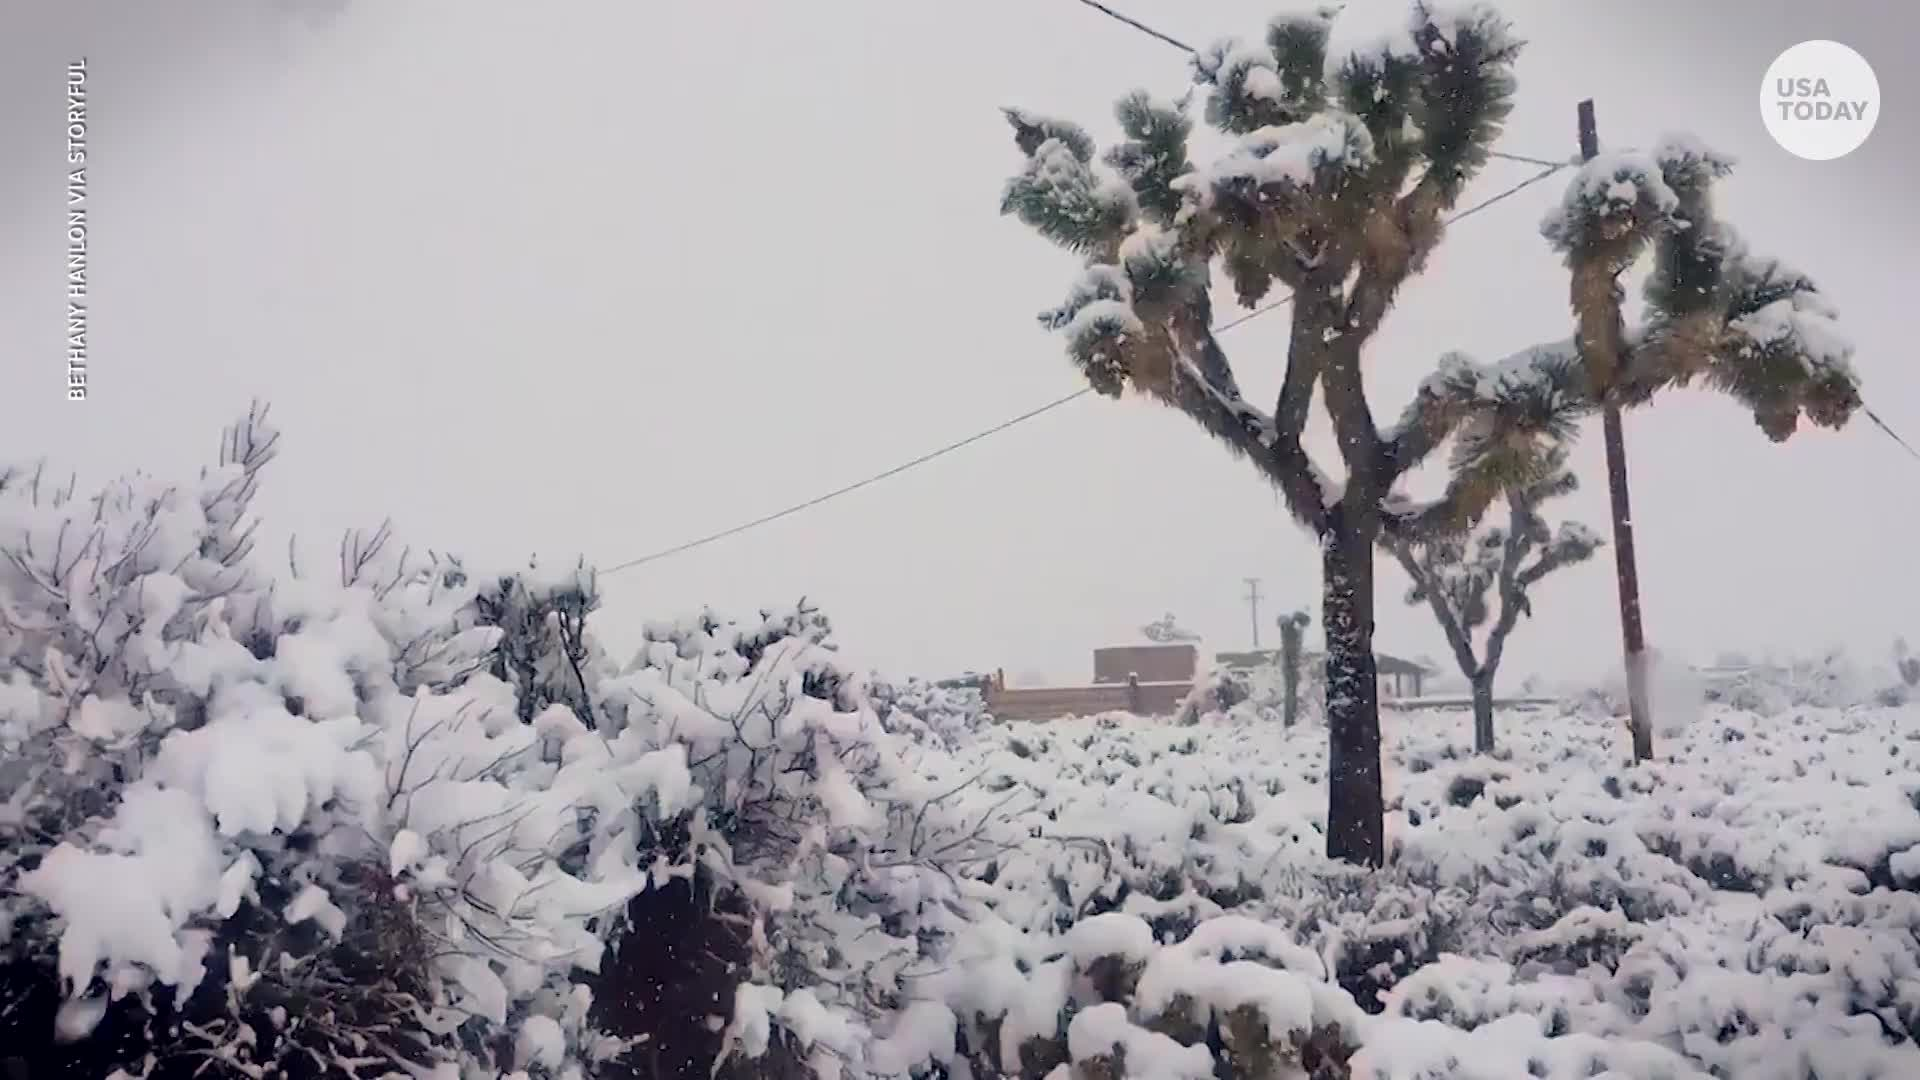 Plains, Upper Midwest brace for major winter storm barreling out of Southern California